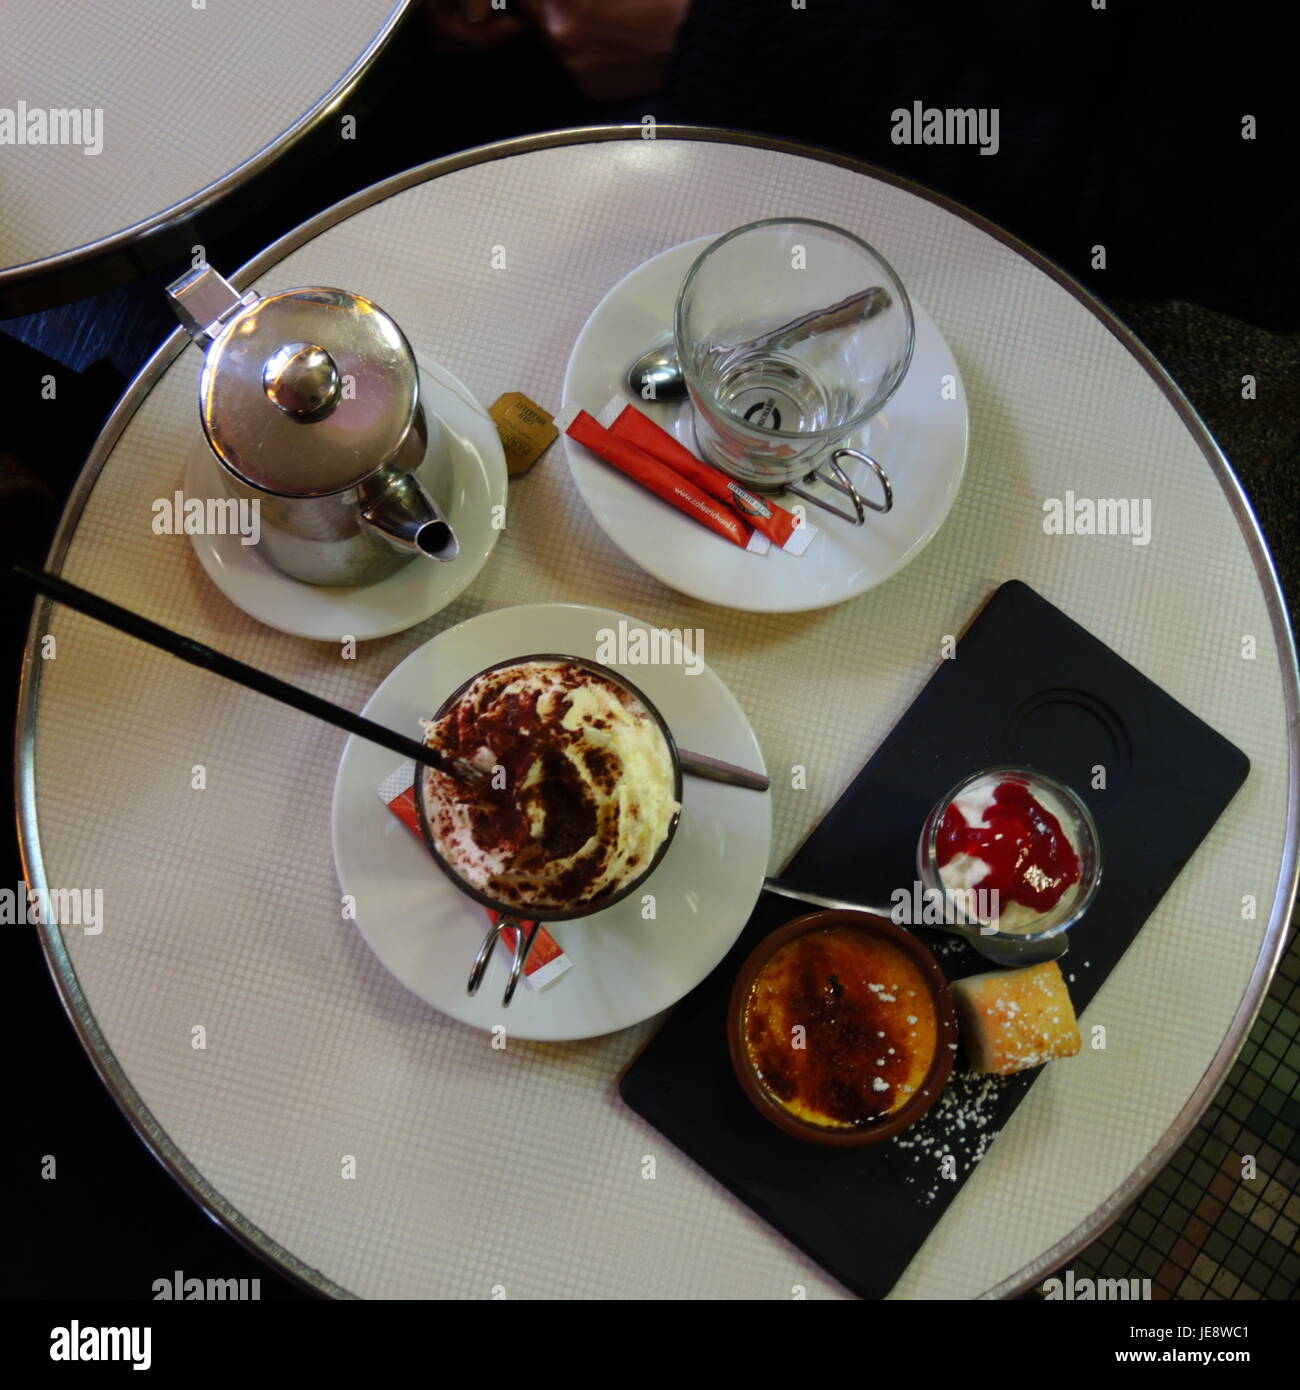 PARIS FRANCE - HOT CHOCOLATE AND TEA WITH PASTRIES AT THE CAFE - PARIS CAFE © Frédéric BEAUMONT Stock Photo